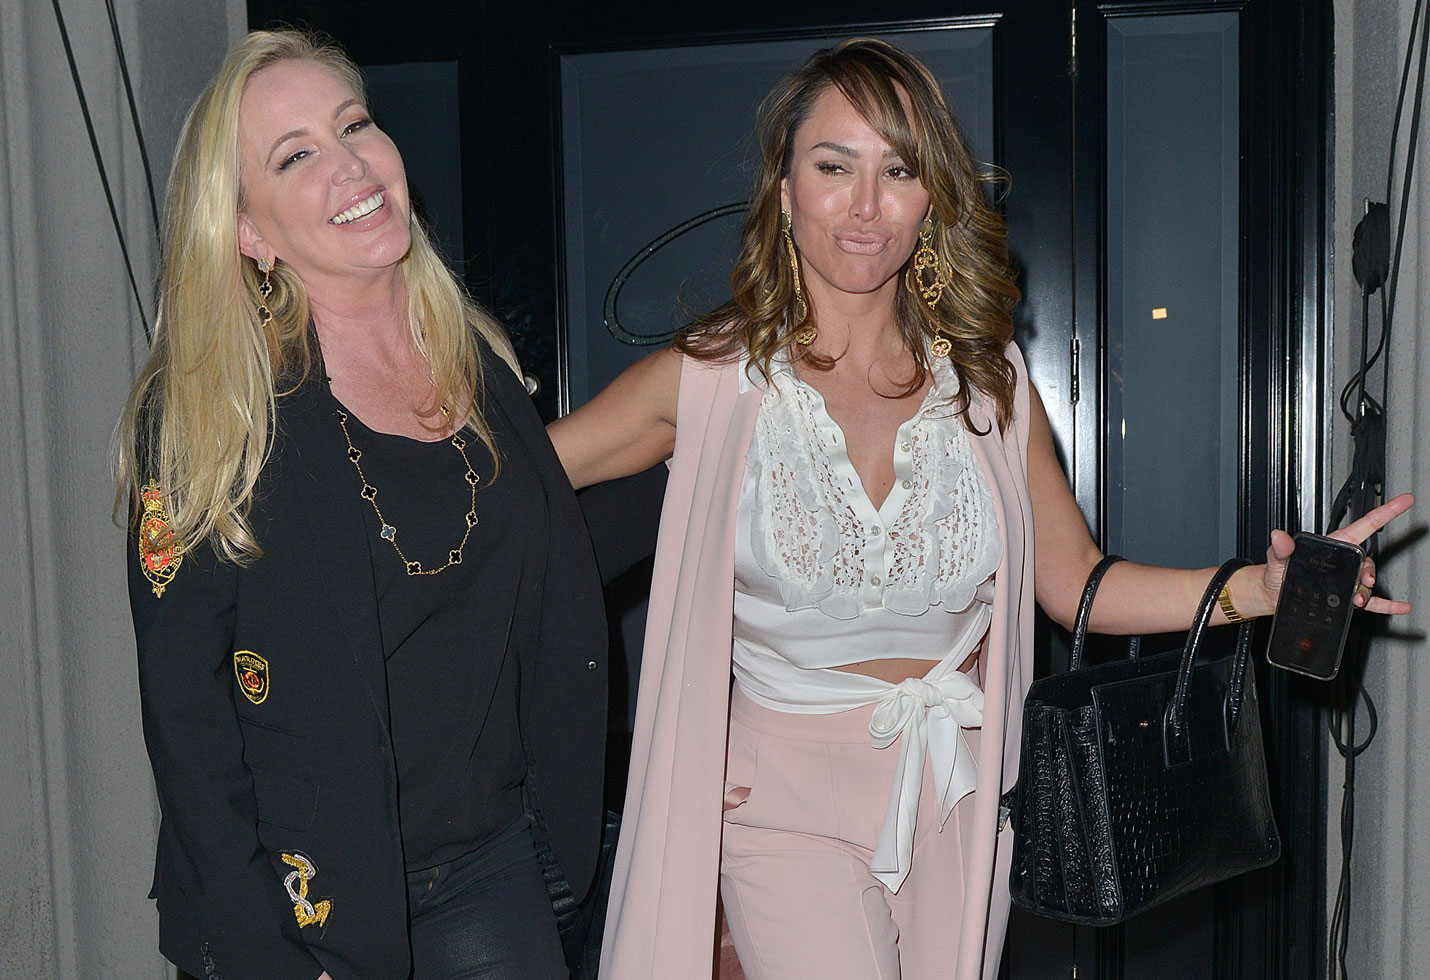 Shannon Beador Dating Kelly Dodd Body Insecurities